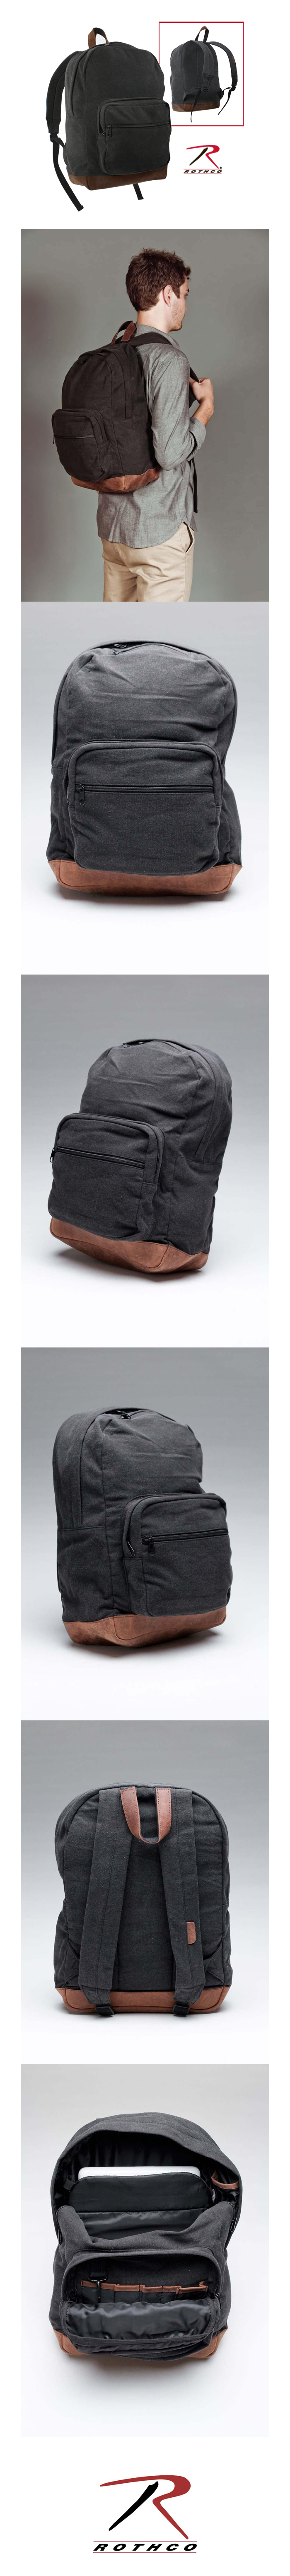 CANVAS TEARDROP PACK BLACK WITH LEATHER